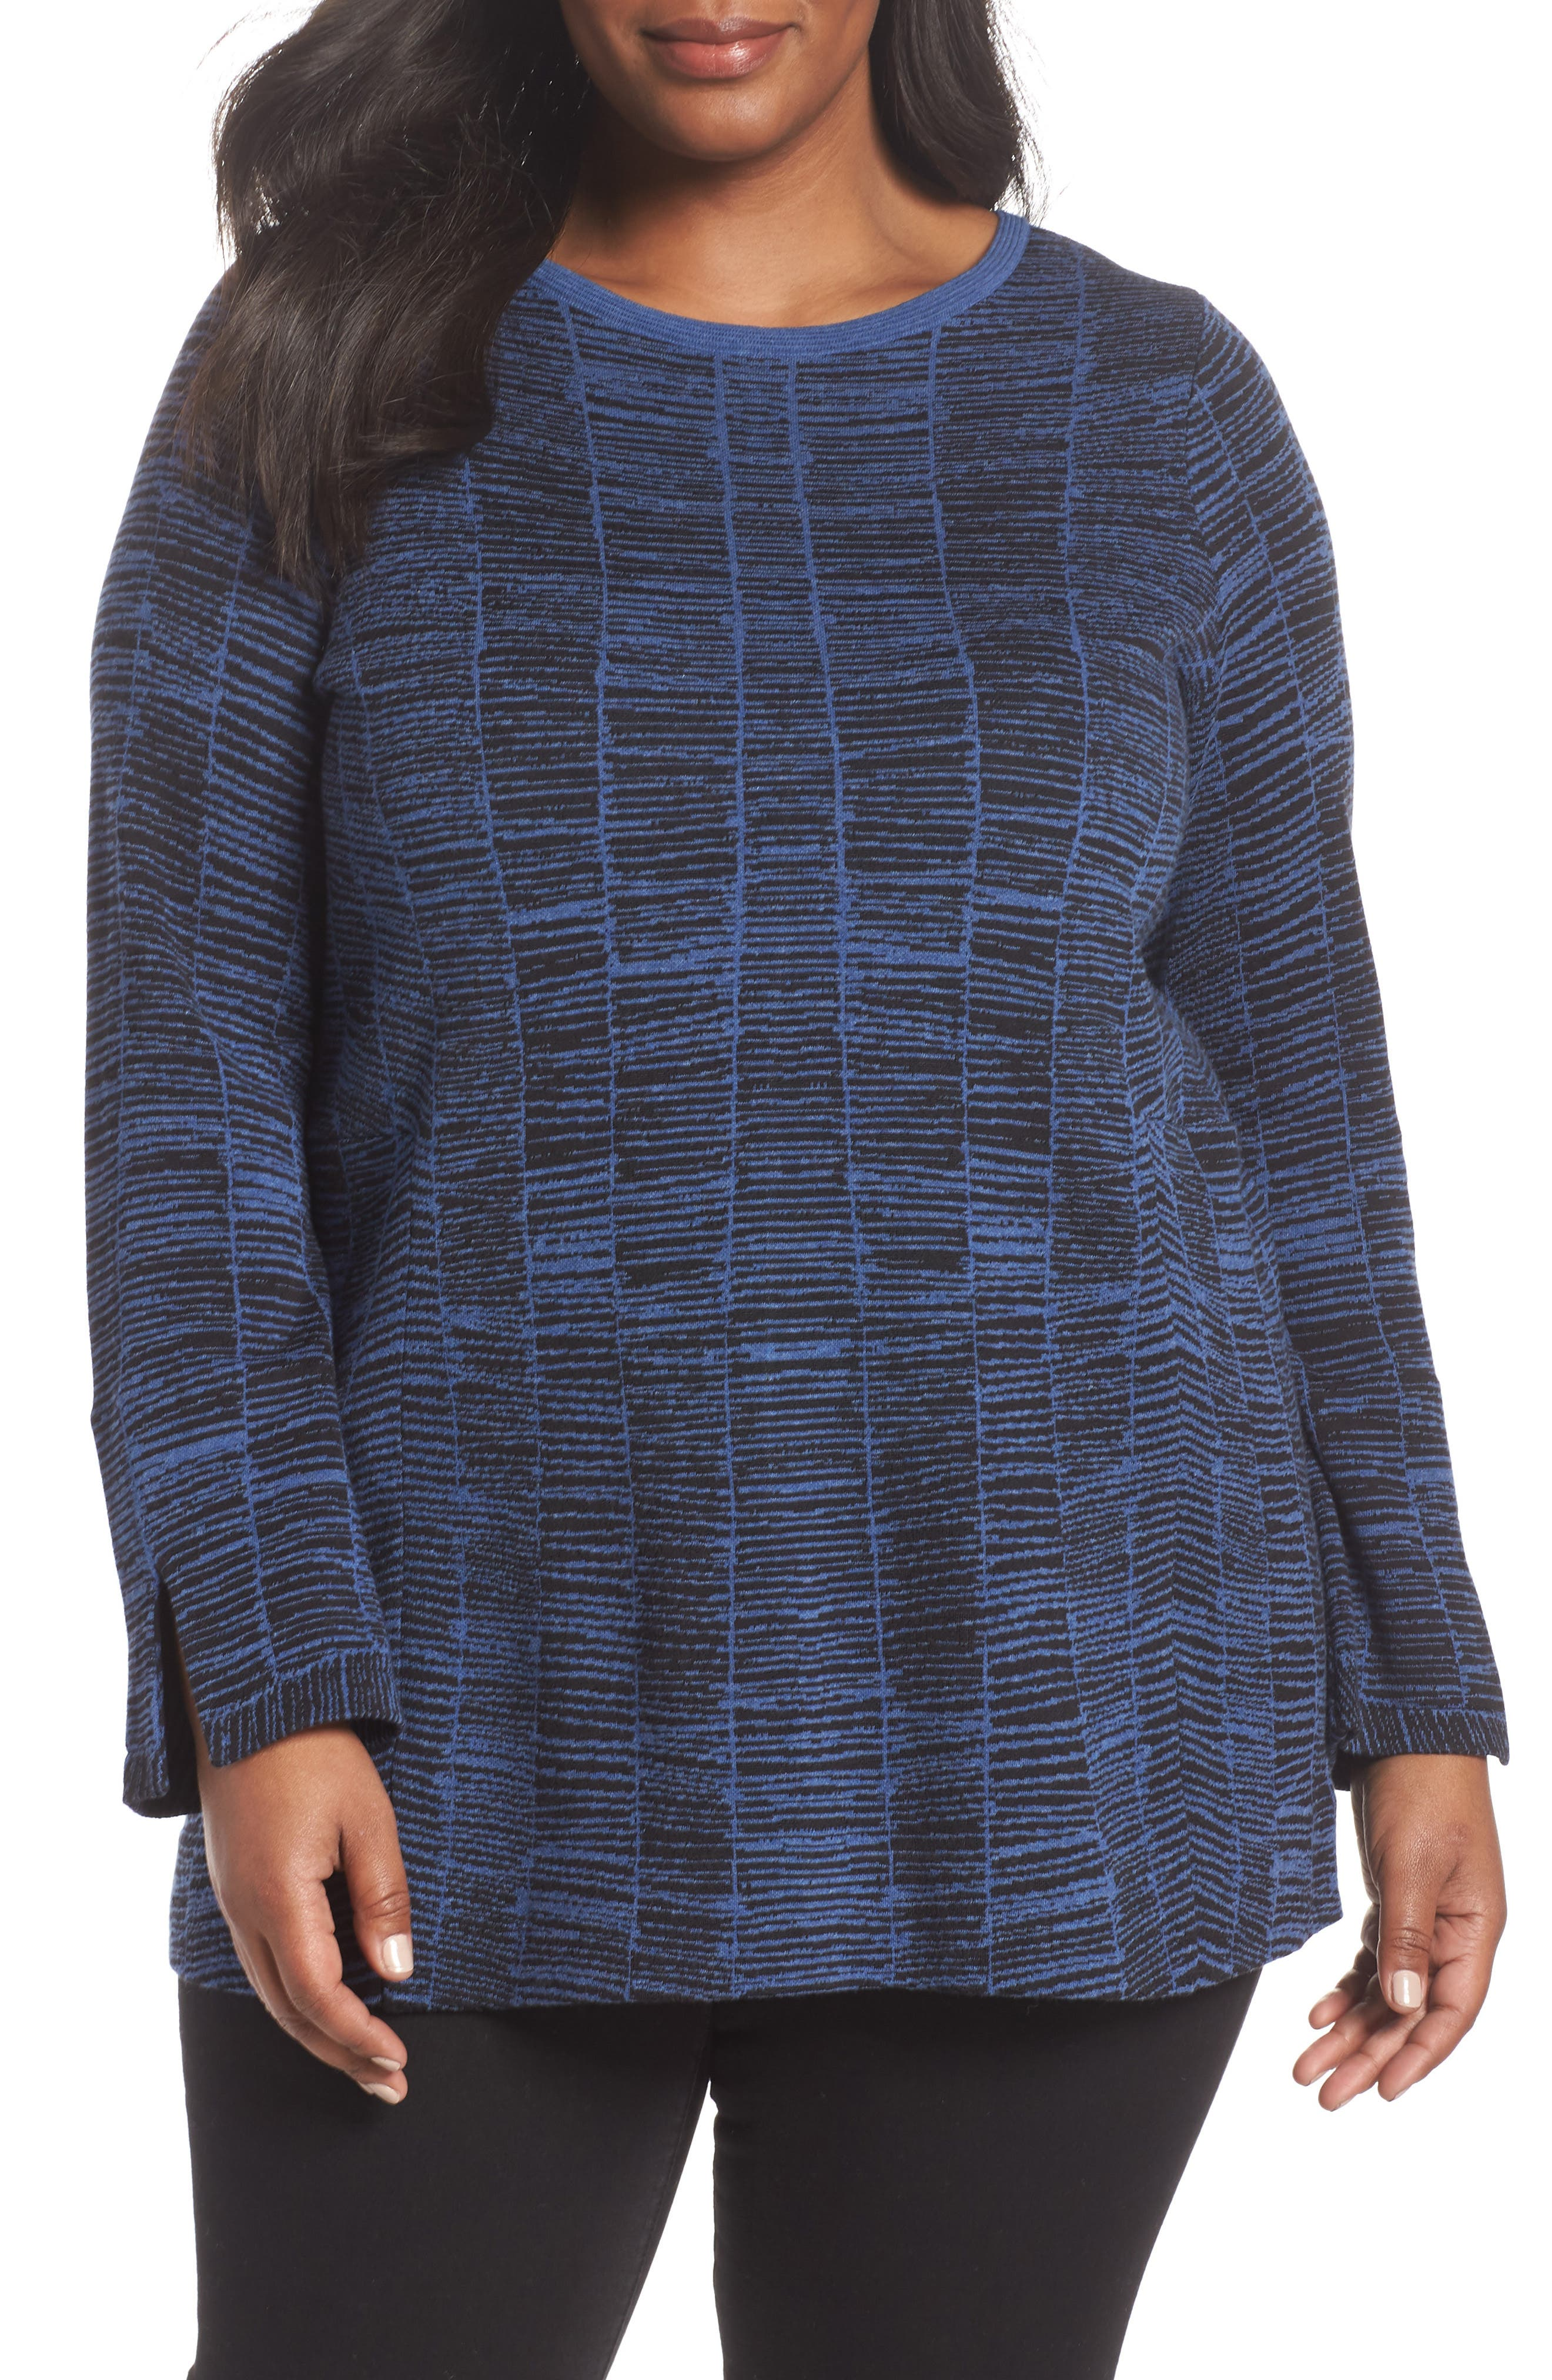 Symmetry Tunic Top,                         Main,                         color, 499